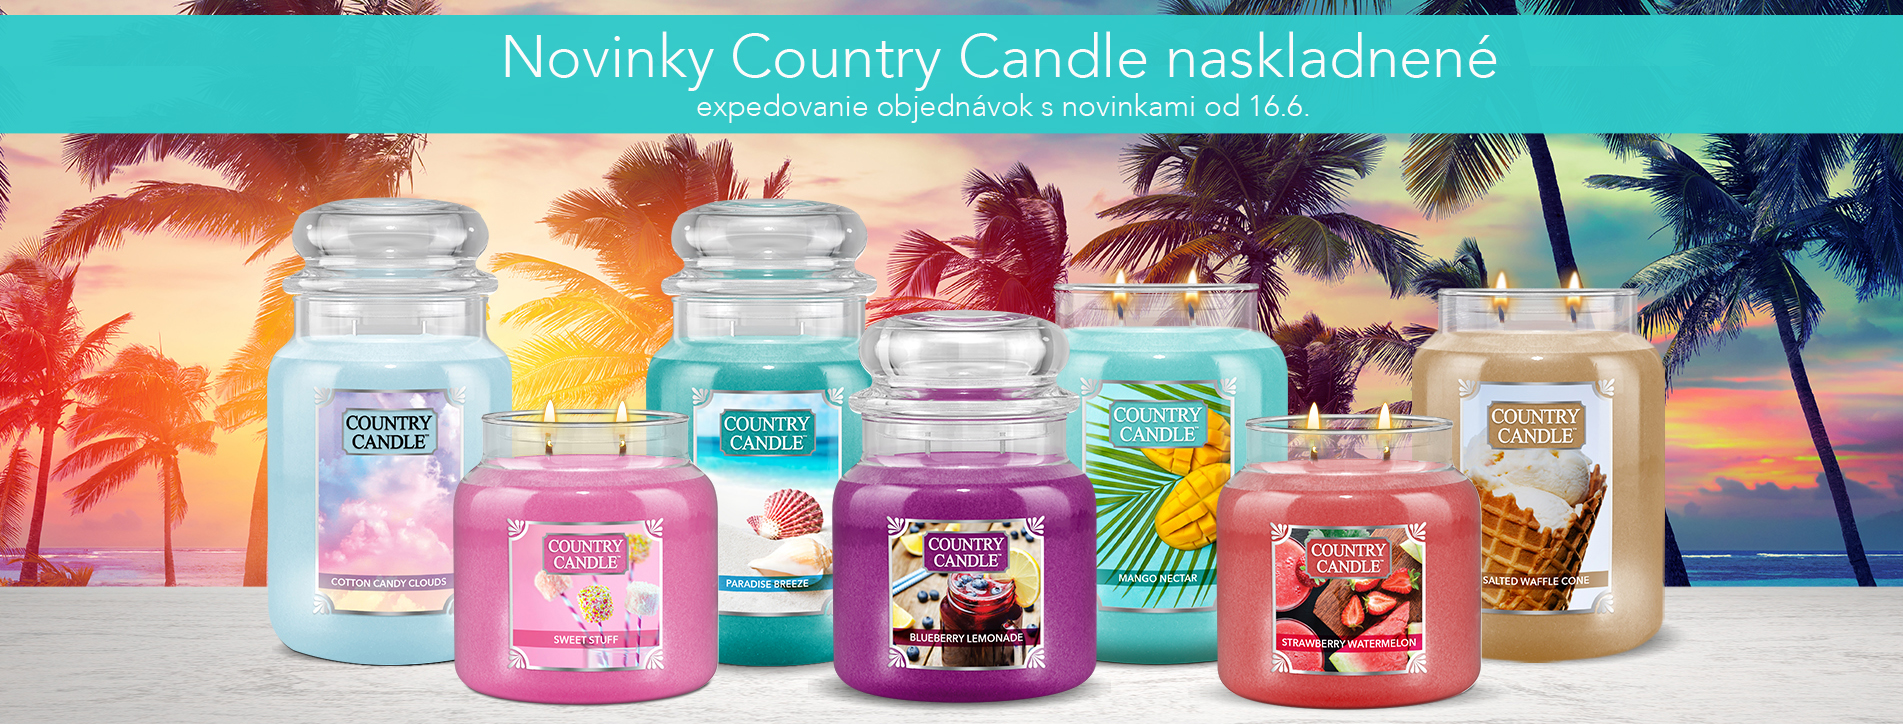 Novinky Country Candle